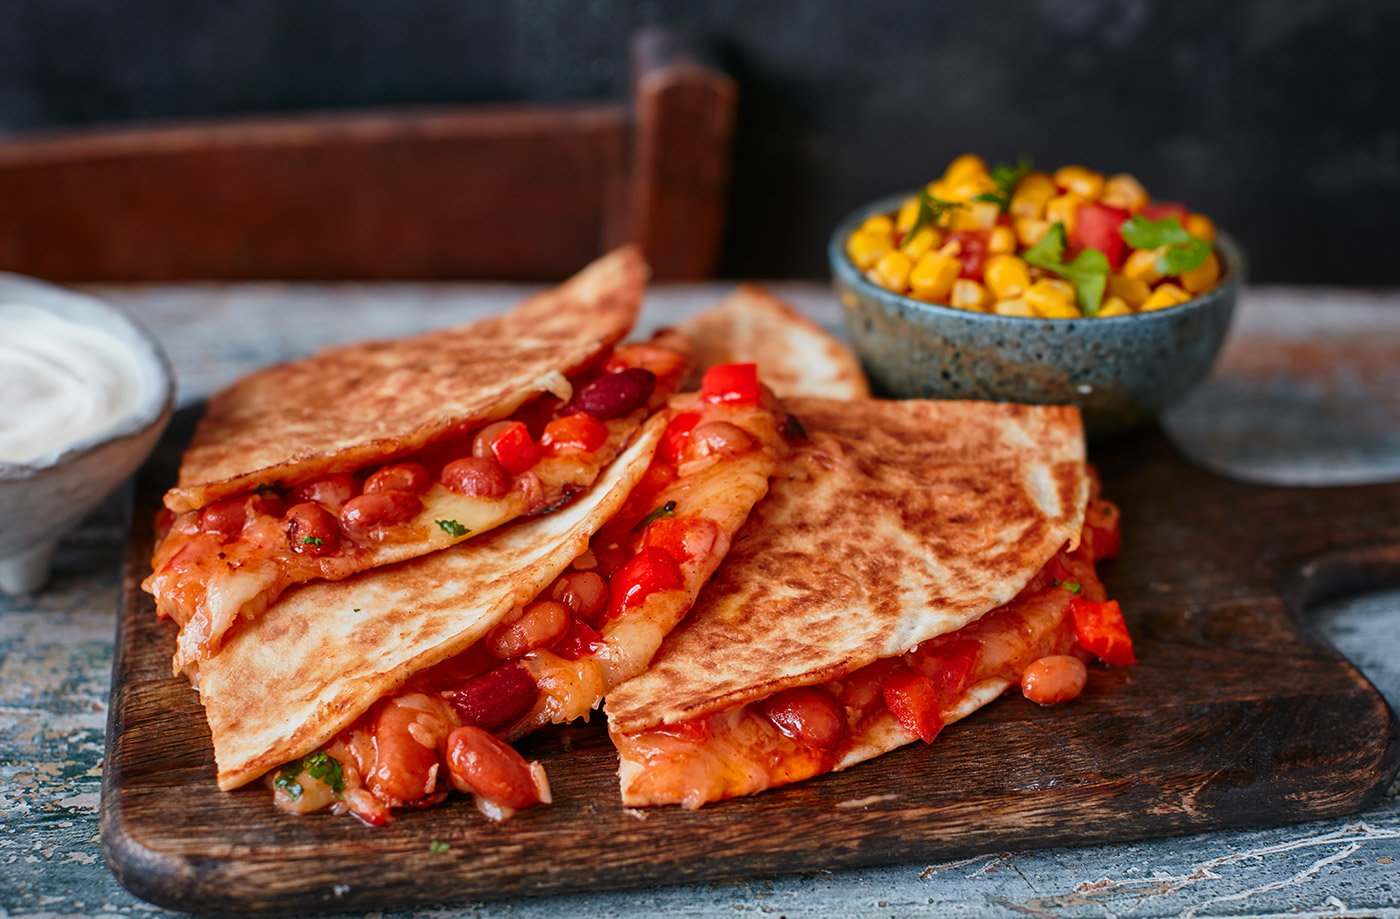 Bean quesadillas with sweetcorn salsa